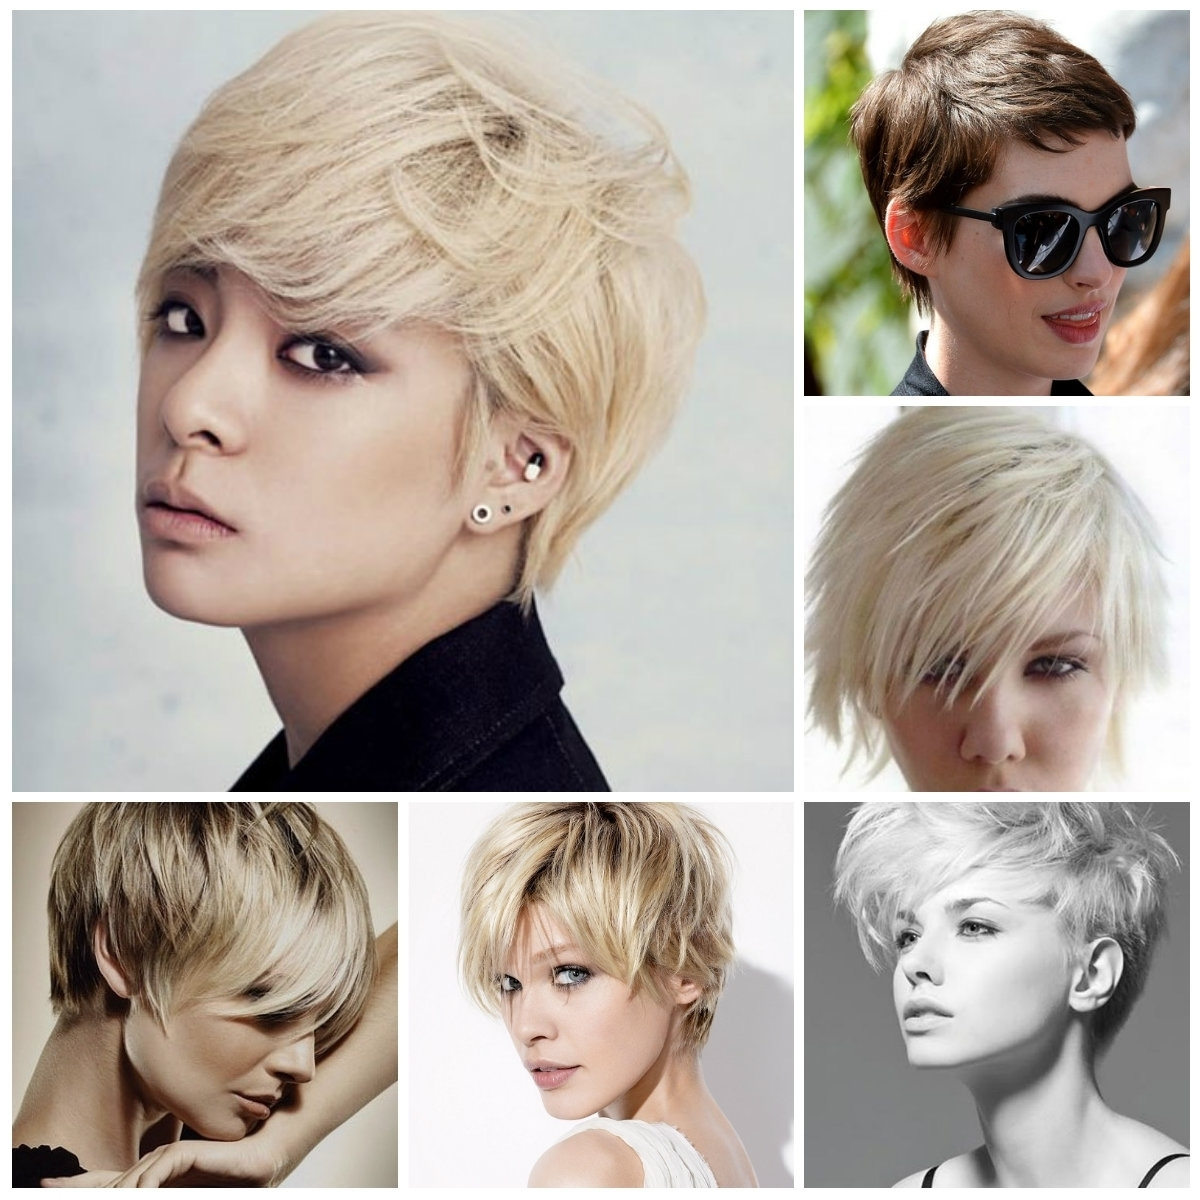 Medium Pixie Cut Hairstyle Latest Pixie Haircut Ideas 2016 Trendy Pertaining To Most Recently Medium Pixie Hairstyles (View 5 of 15)